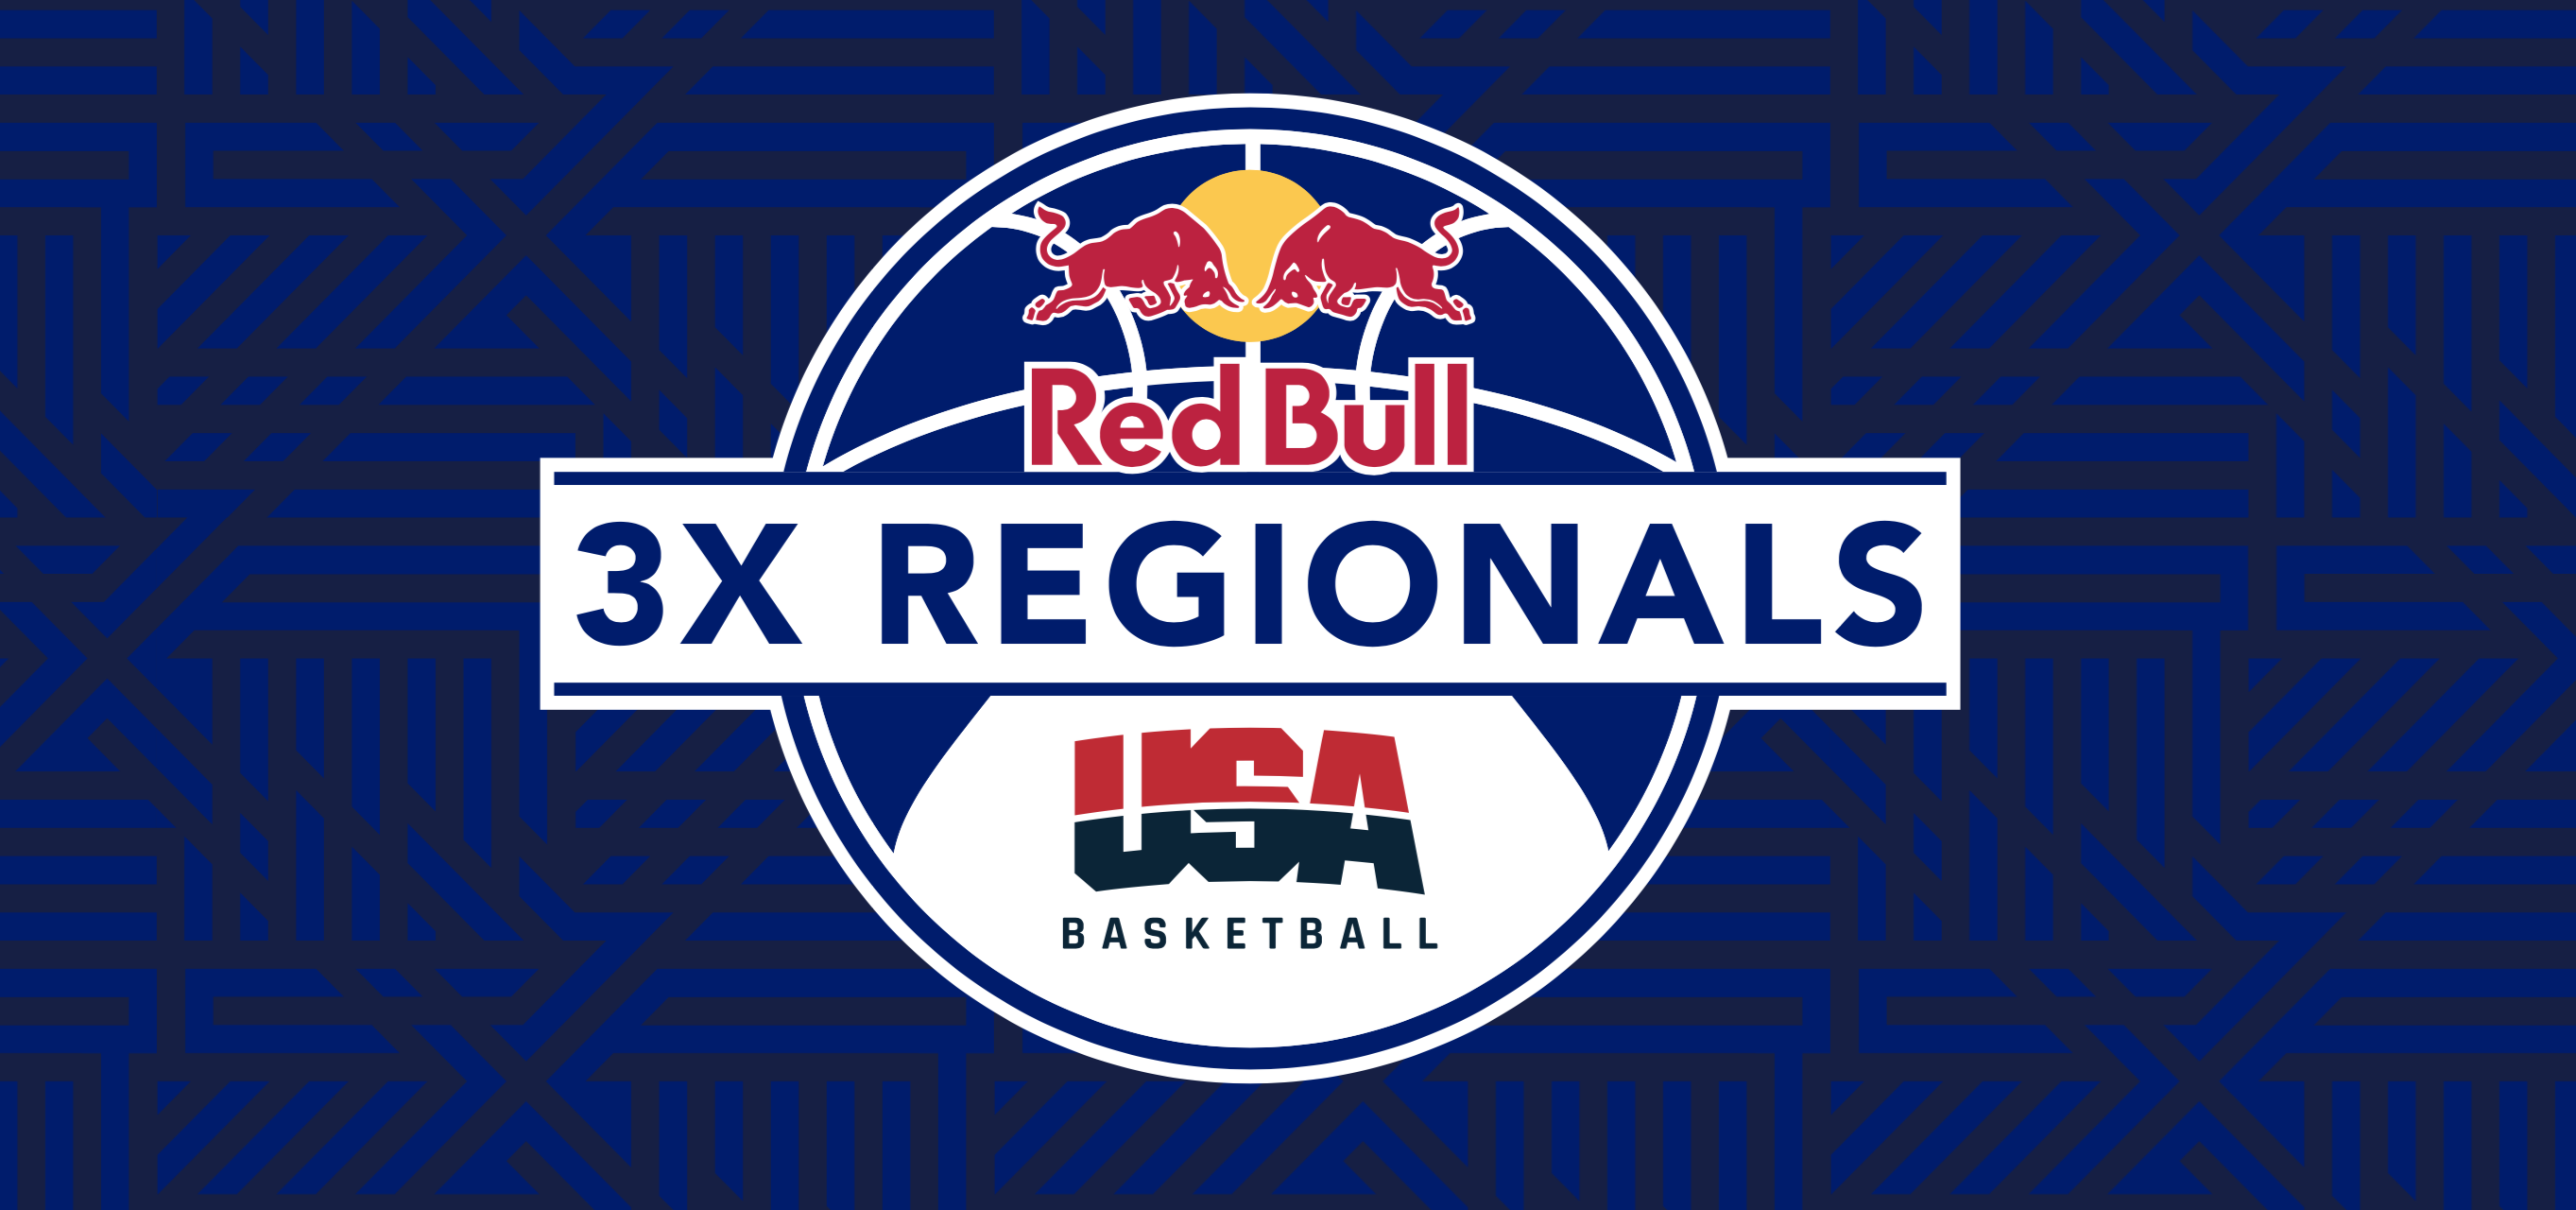 Red Bull USA Basketball 3X Regionals Logo